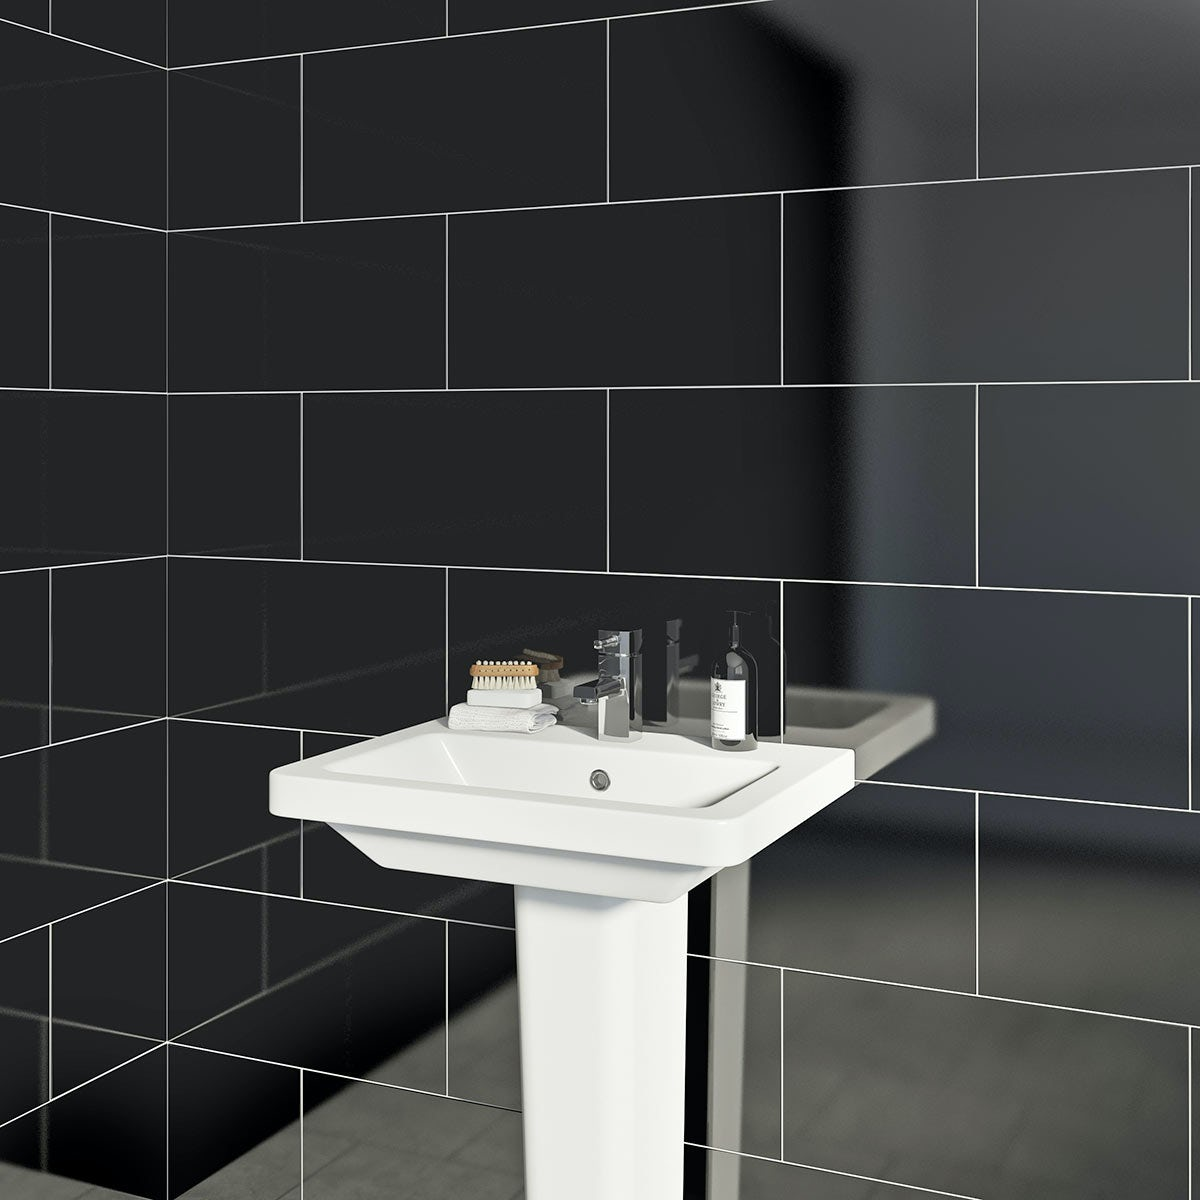 British Ceramic Tile Pure black gloss tile 248mm x 498mm - Sold by Victoria Plum